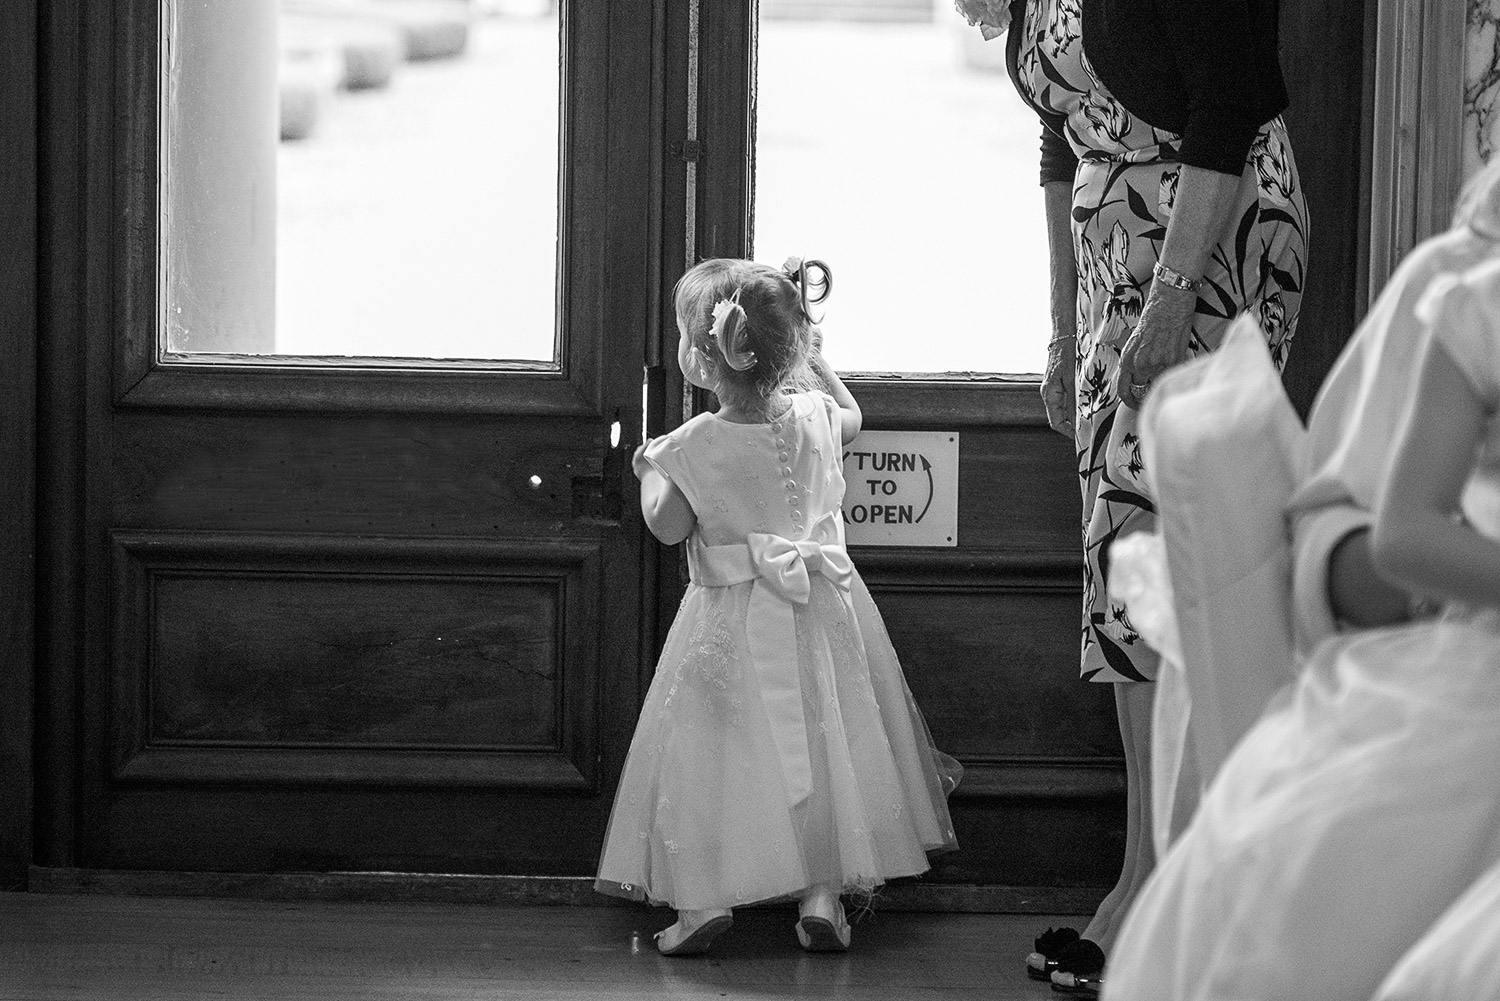 Copy of flower girl peeking out the window during a wedding